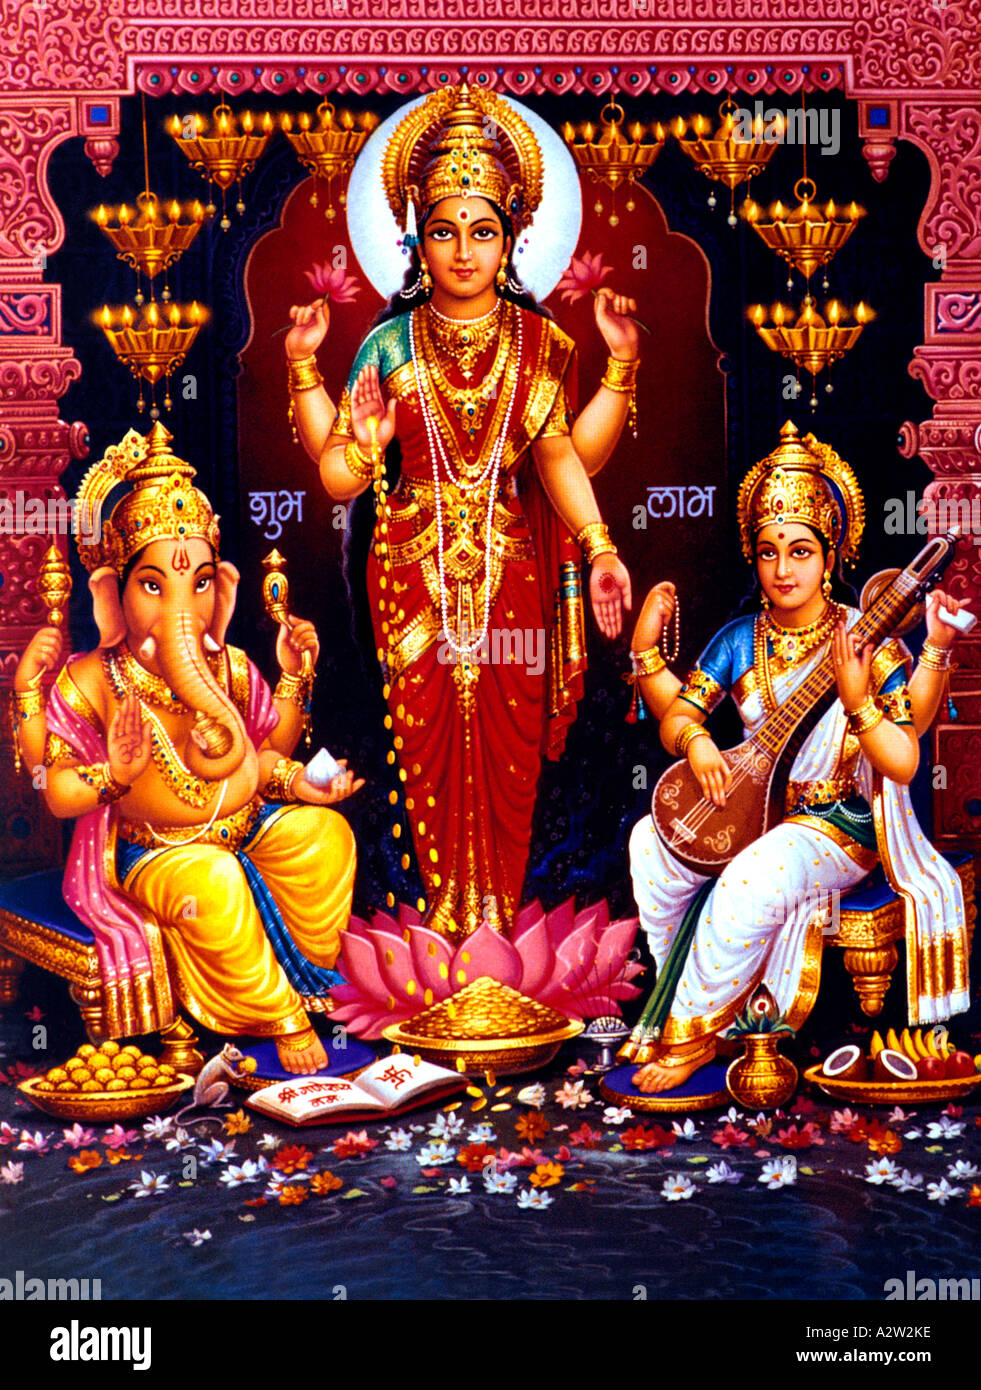 Lakshmi Ganesh High Resolution Stock Photography And Images Alamy